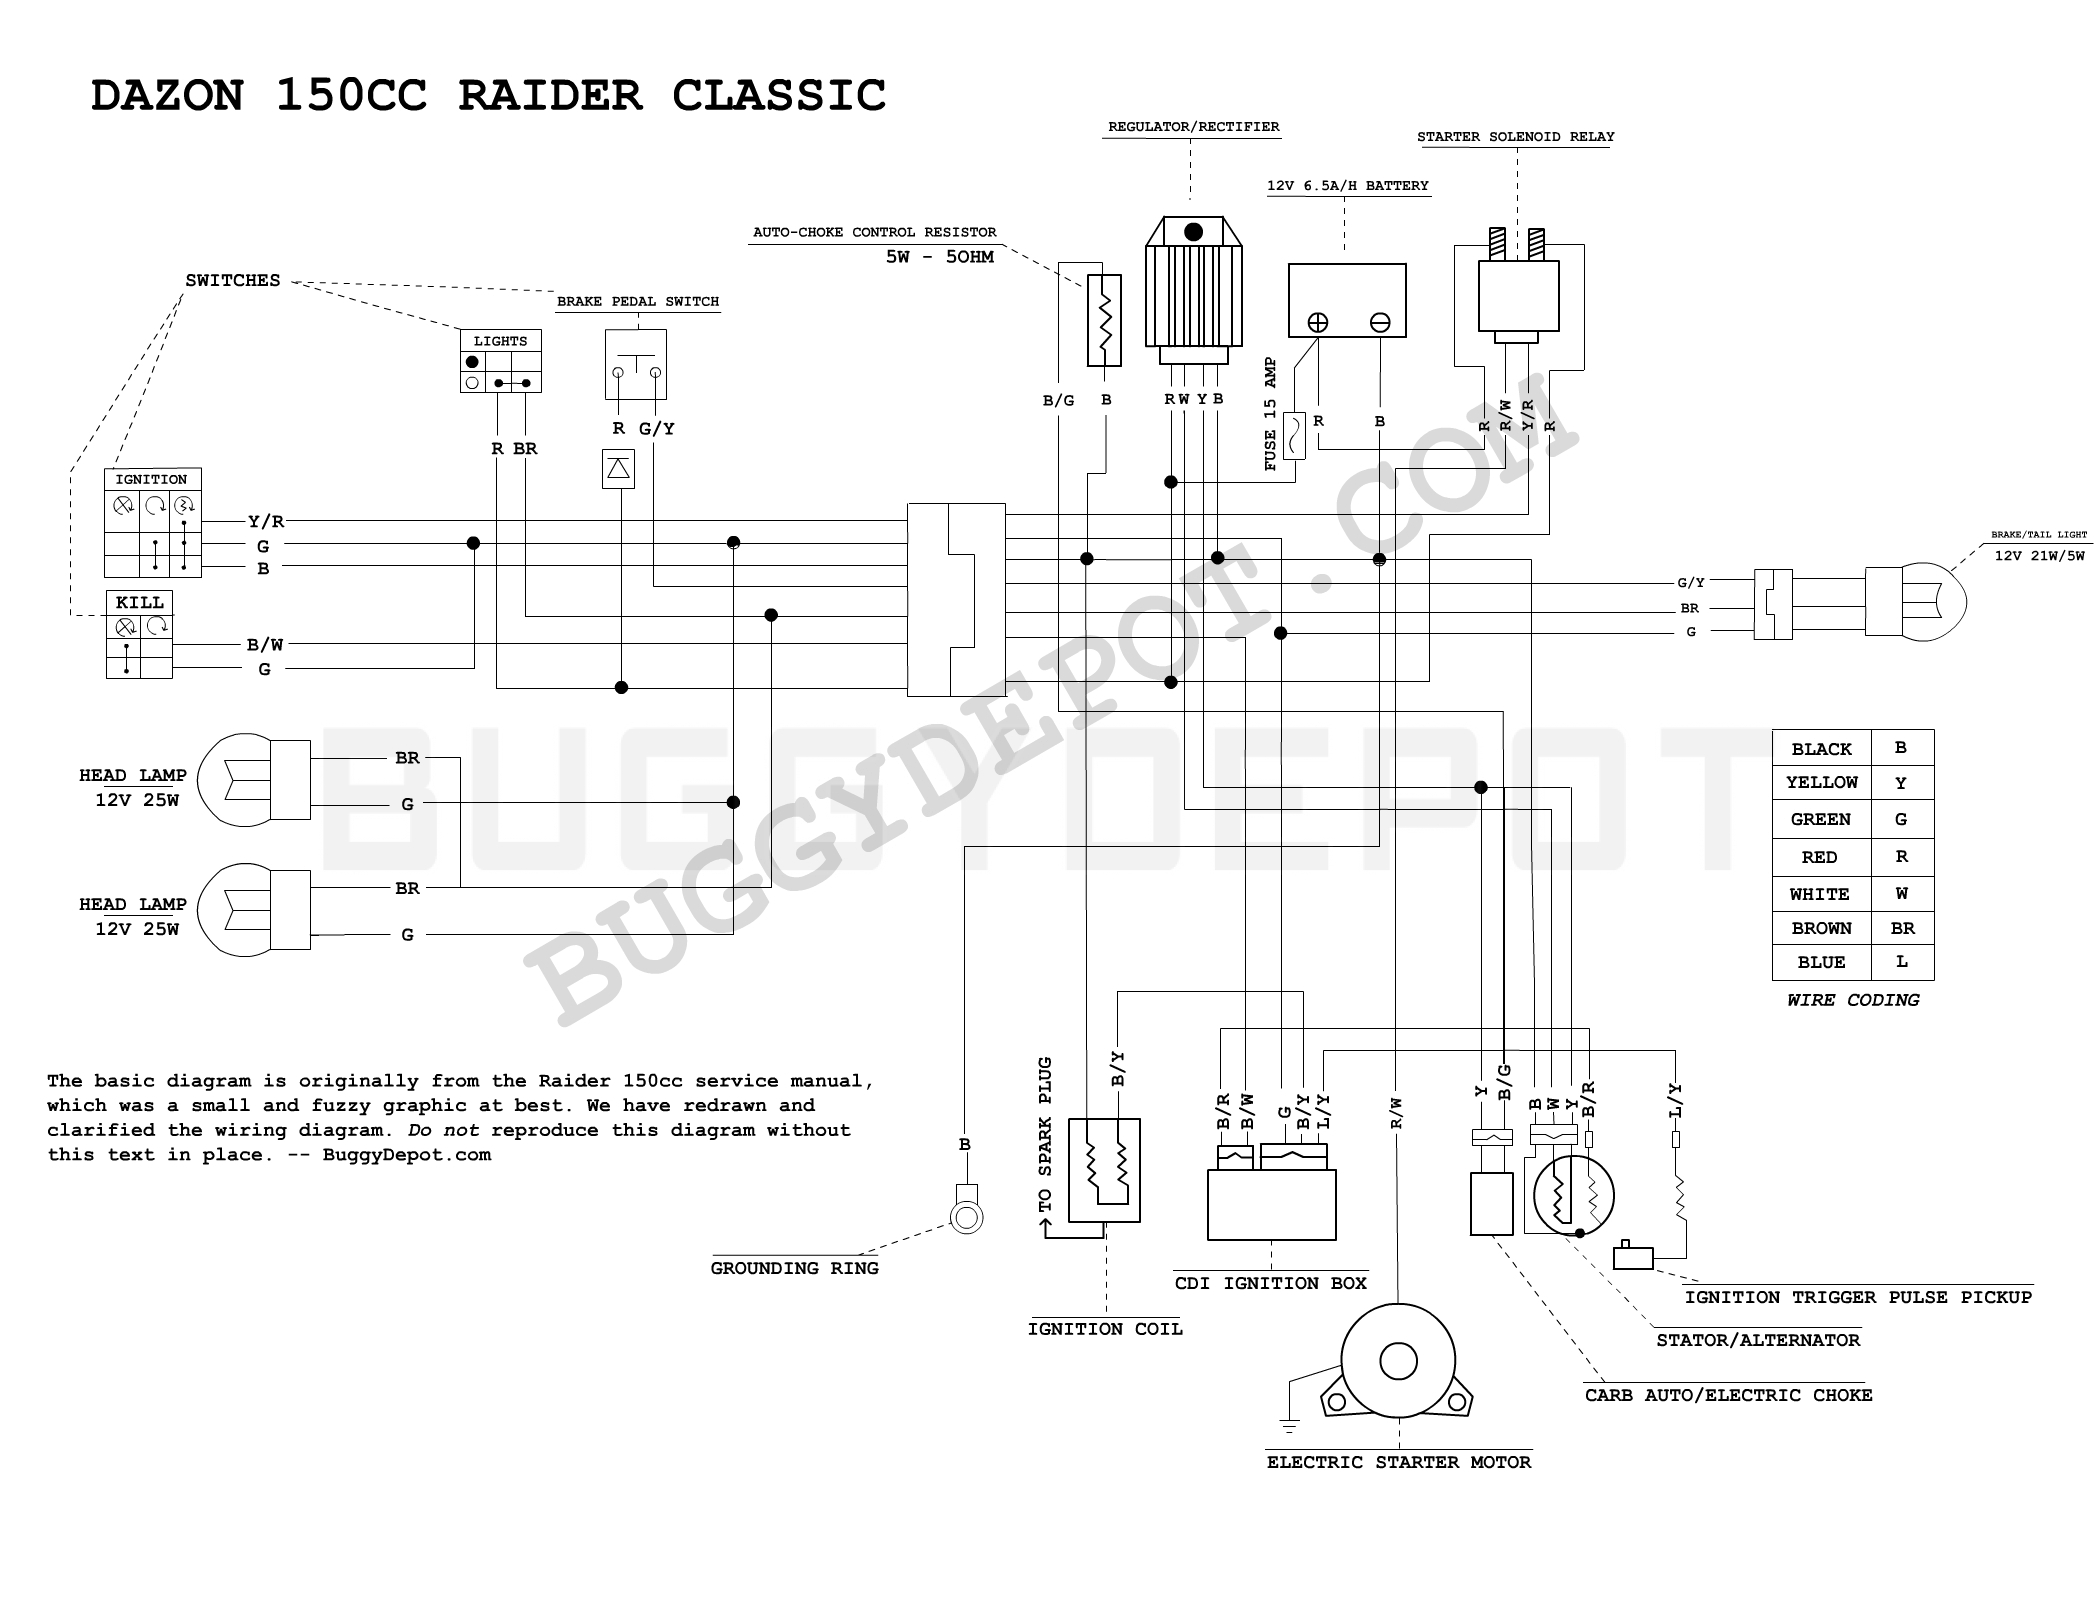 article_33_1278205207 gy6 150cc ignition troubleshooting guide no spark? buggy depot kymco super 8 wiring diagram at reclaimingppi.co